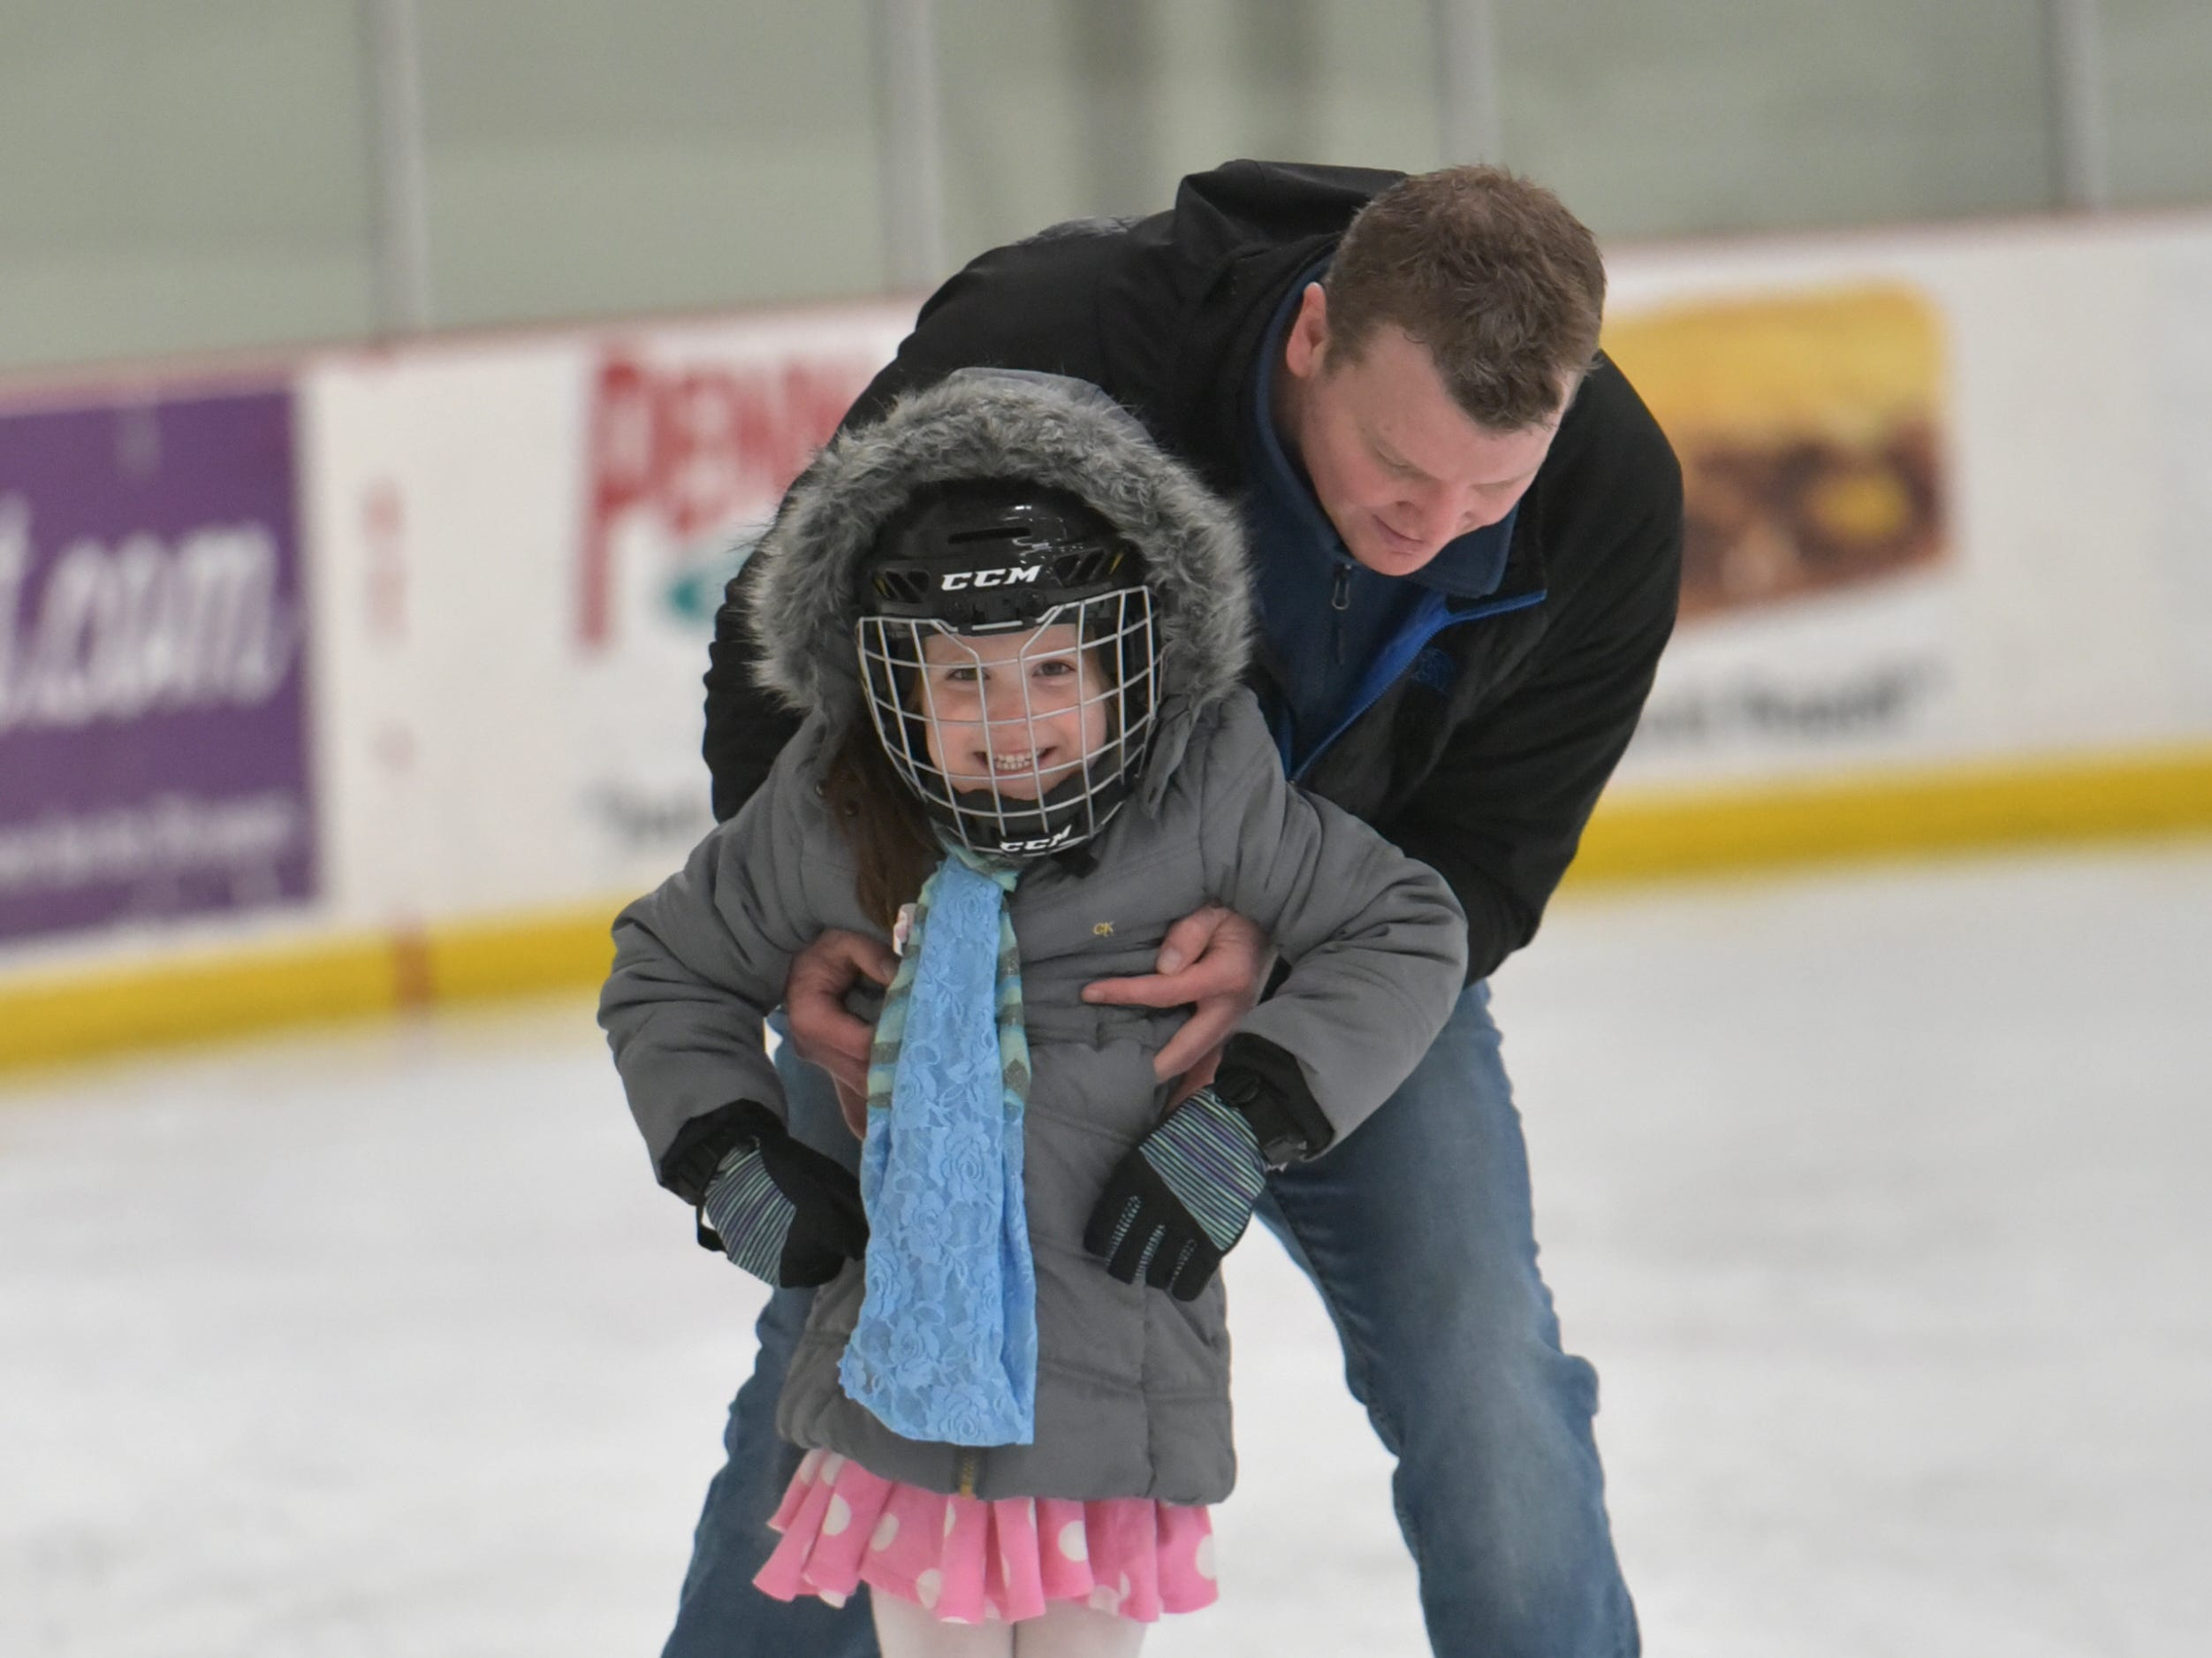 Shawn Dowling helps his daughter Edie, 4, across the surface at the Novi Ice Arena on Jan. 23 during its Noon Skate. The open-to-the-public skate takes place weekdays starting at 12 pm.